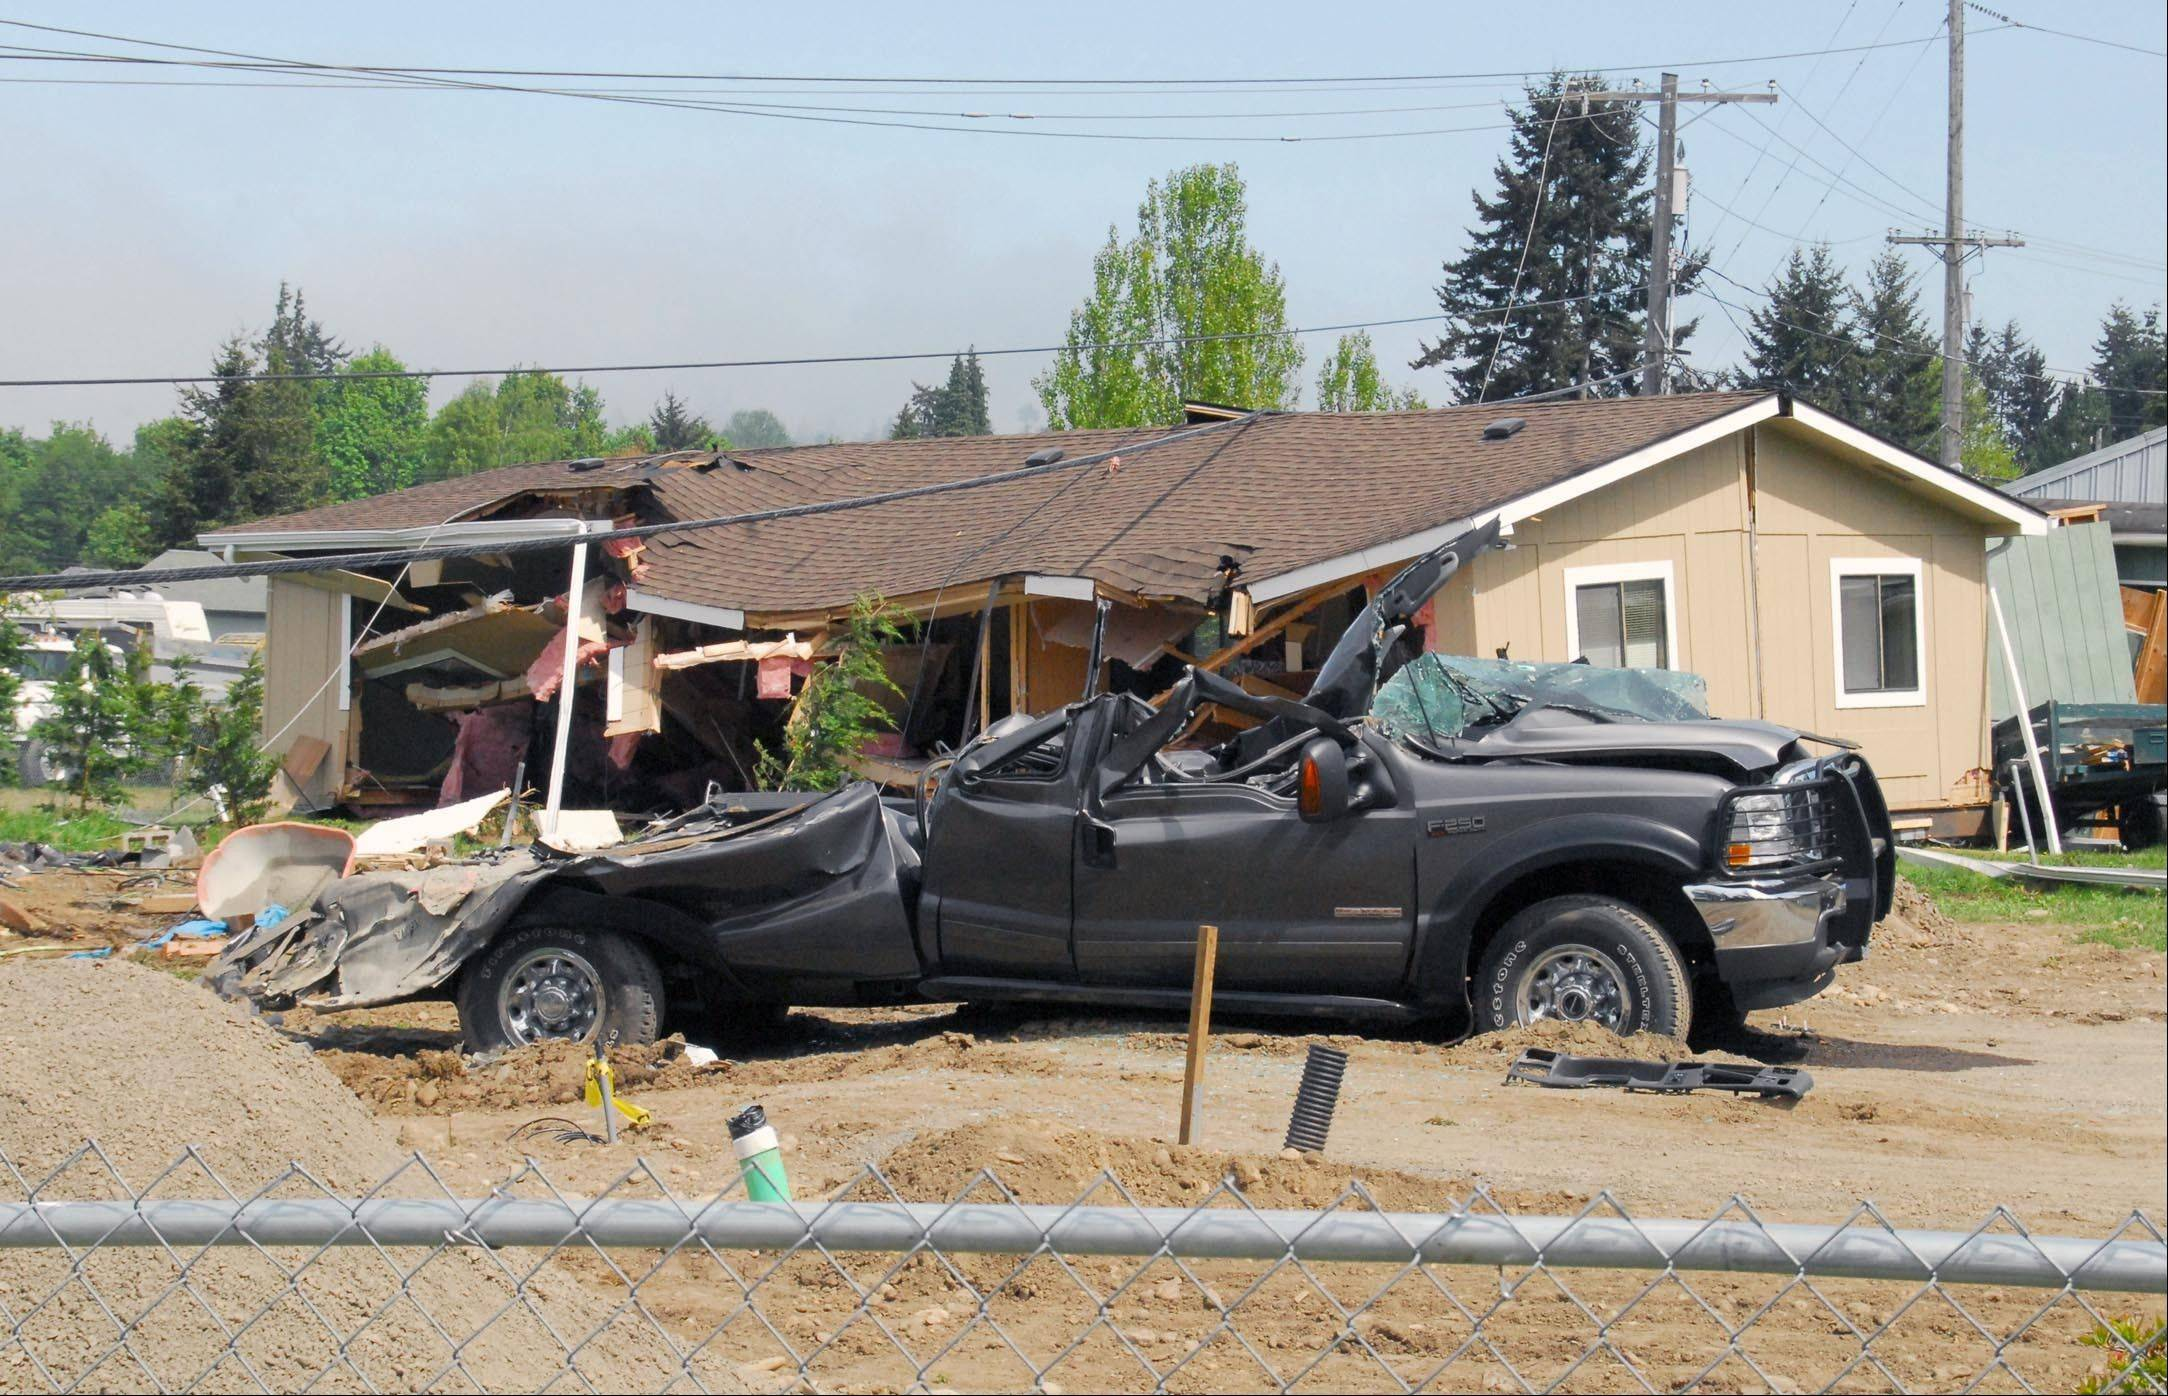 A crushed truck and a house knocked off its foundation sit as part of the aftermath of a rampage by a man driving a logging bulldozer on Friday in Port Angeles, Wash. At least three houses were destroyed and numerous smaller structures and vehicles were damaged in the rampage.